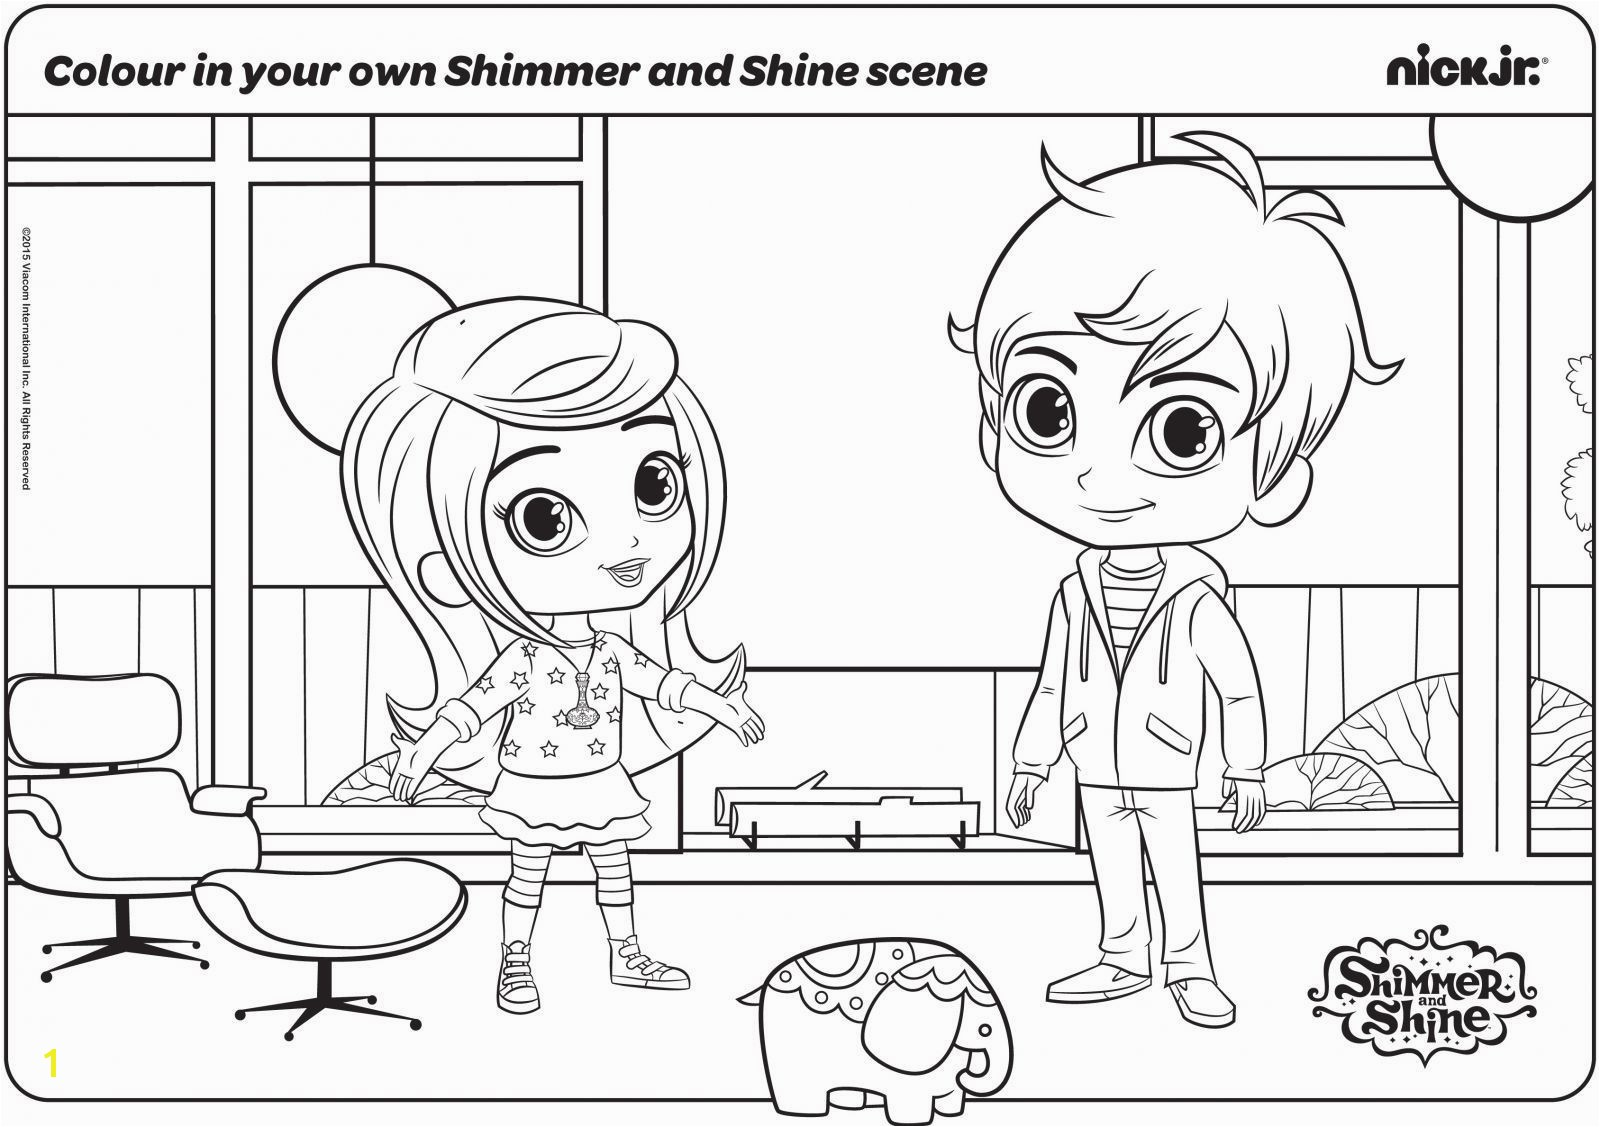 Liv and Mad Printable Coloring Pages Unique Instructive Nick Jr Coloring Pages Shimmer and Shine Printable